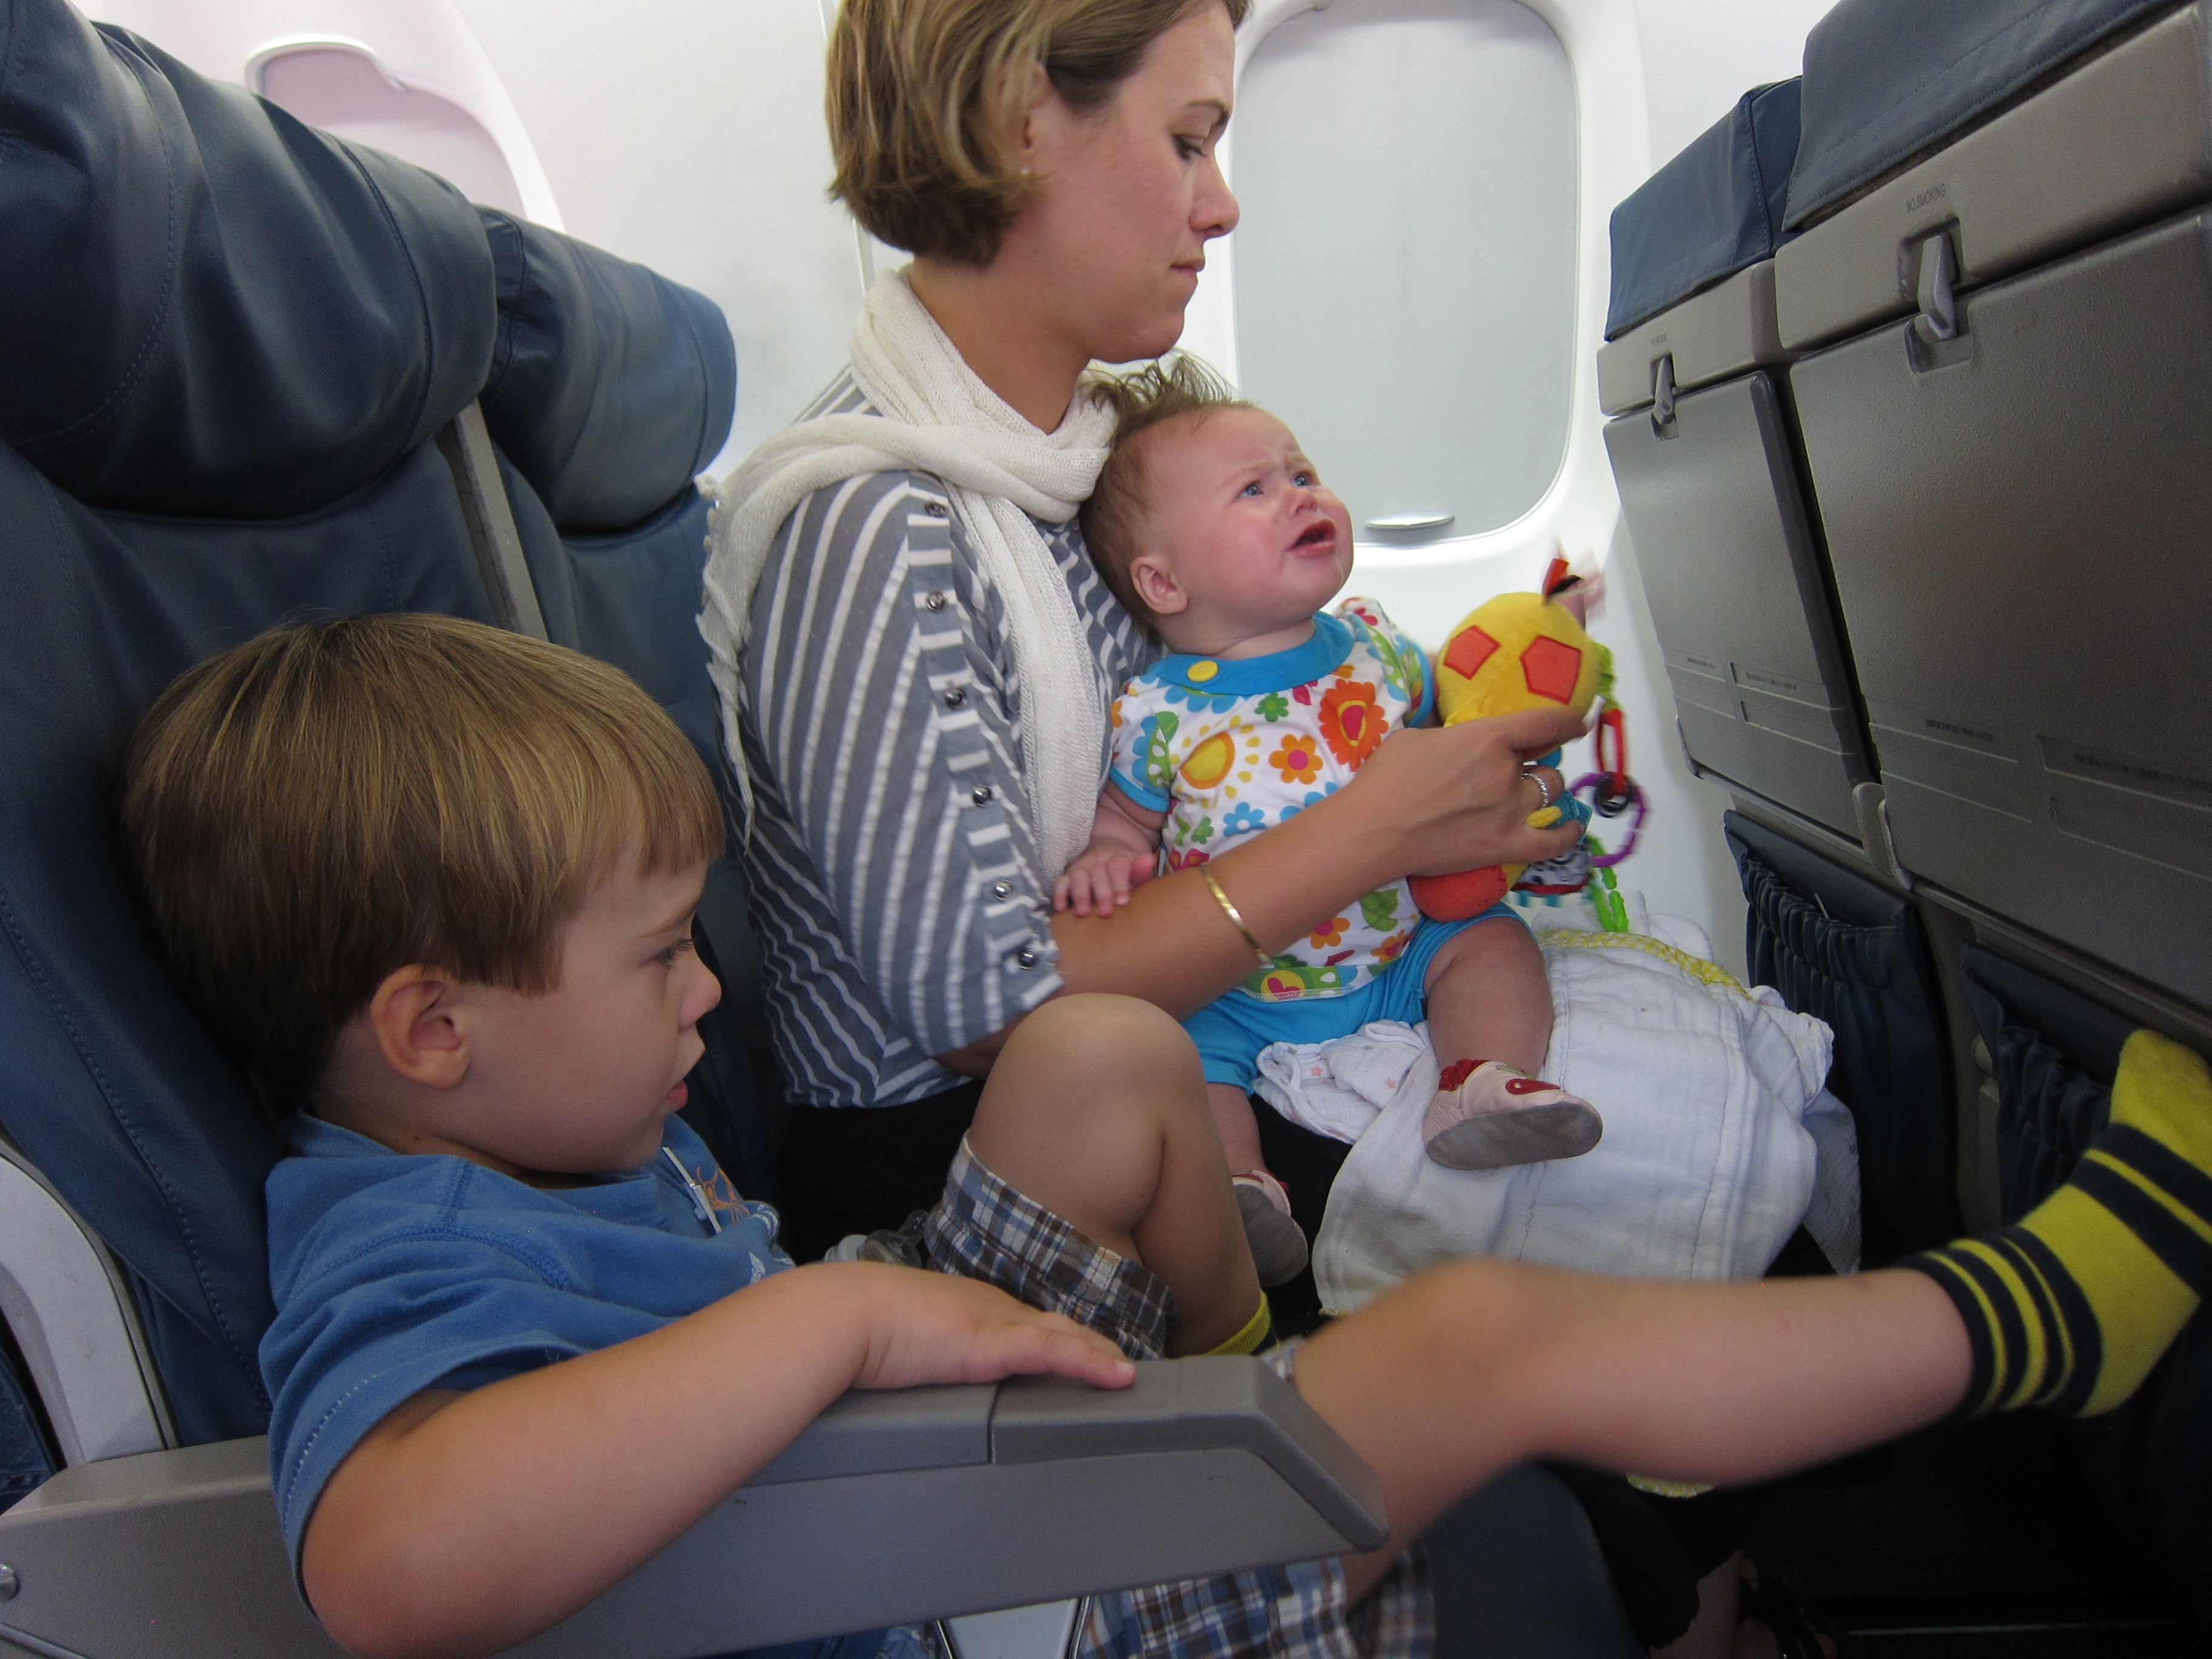 Ways to Calm a Fussy Baby on an Airplane